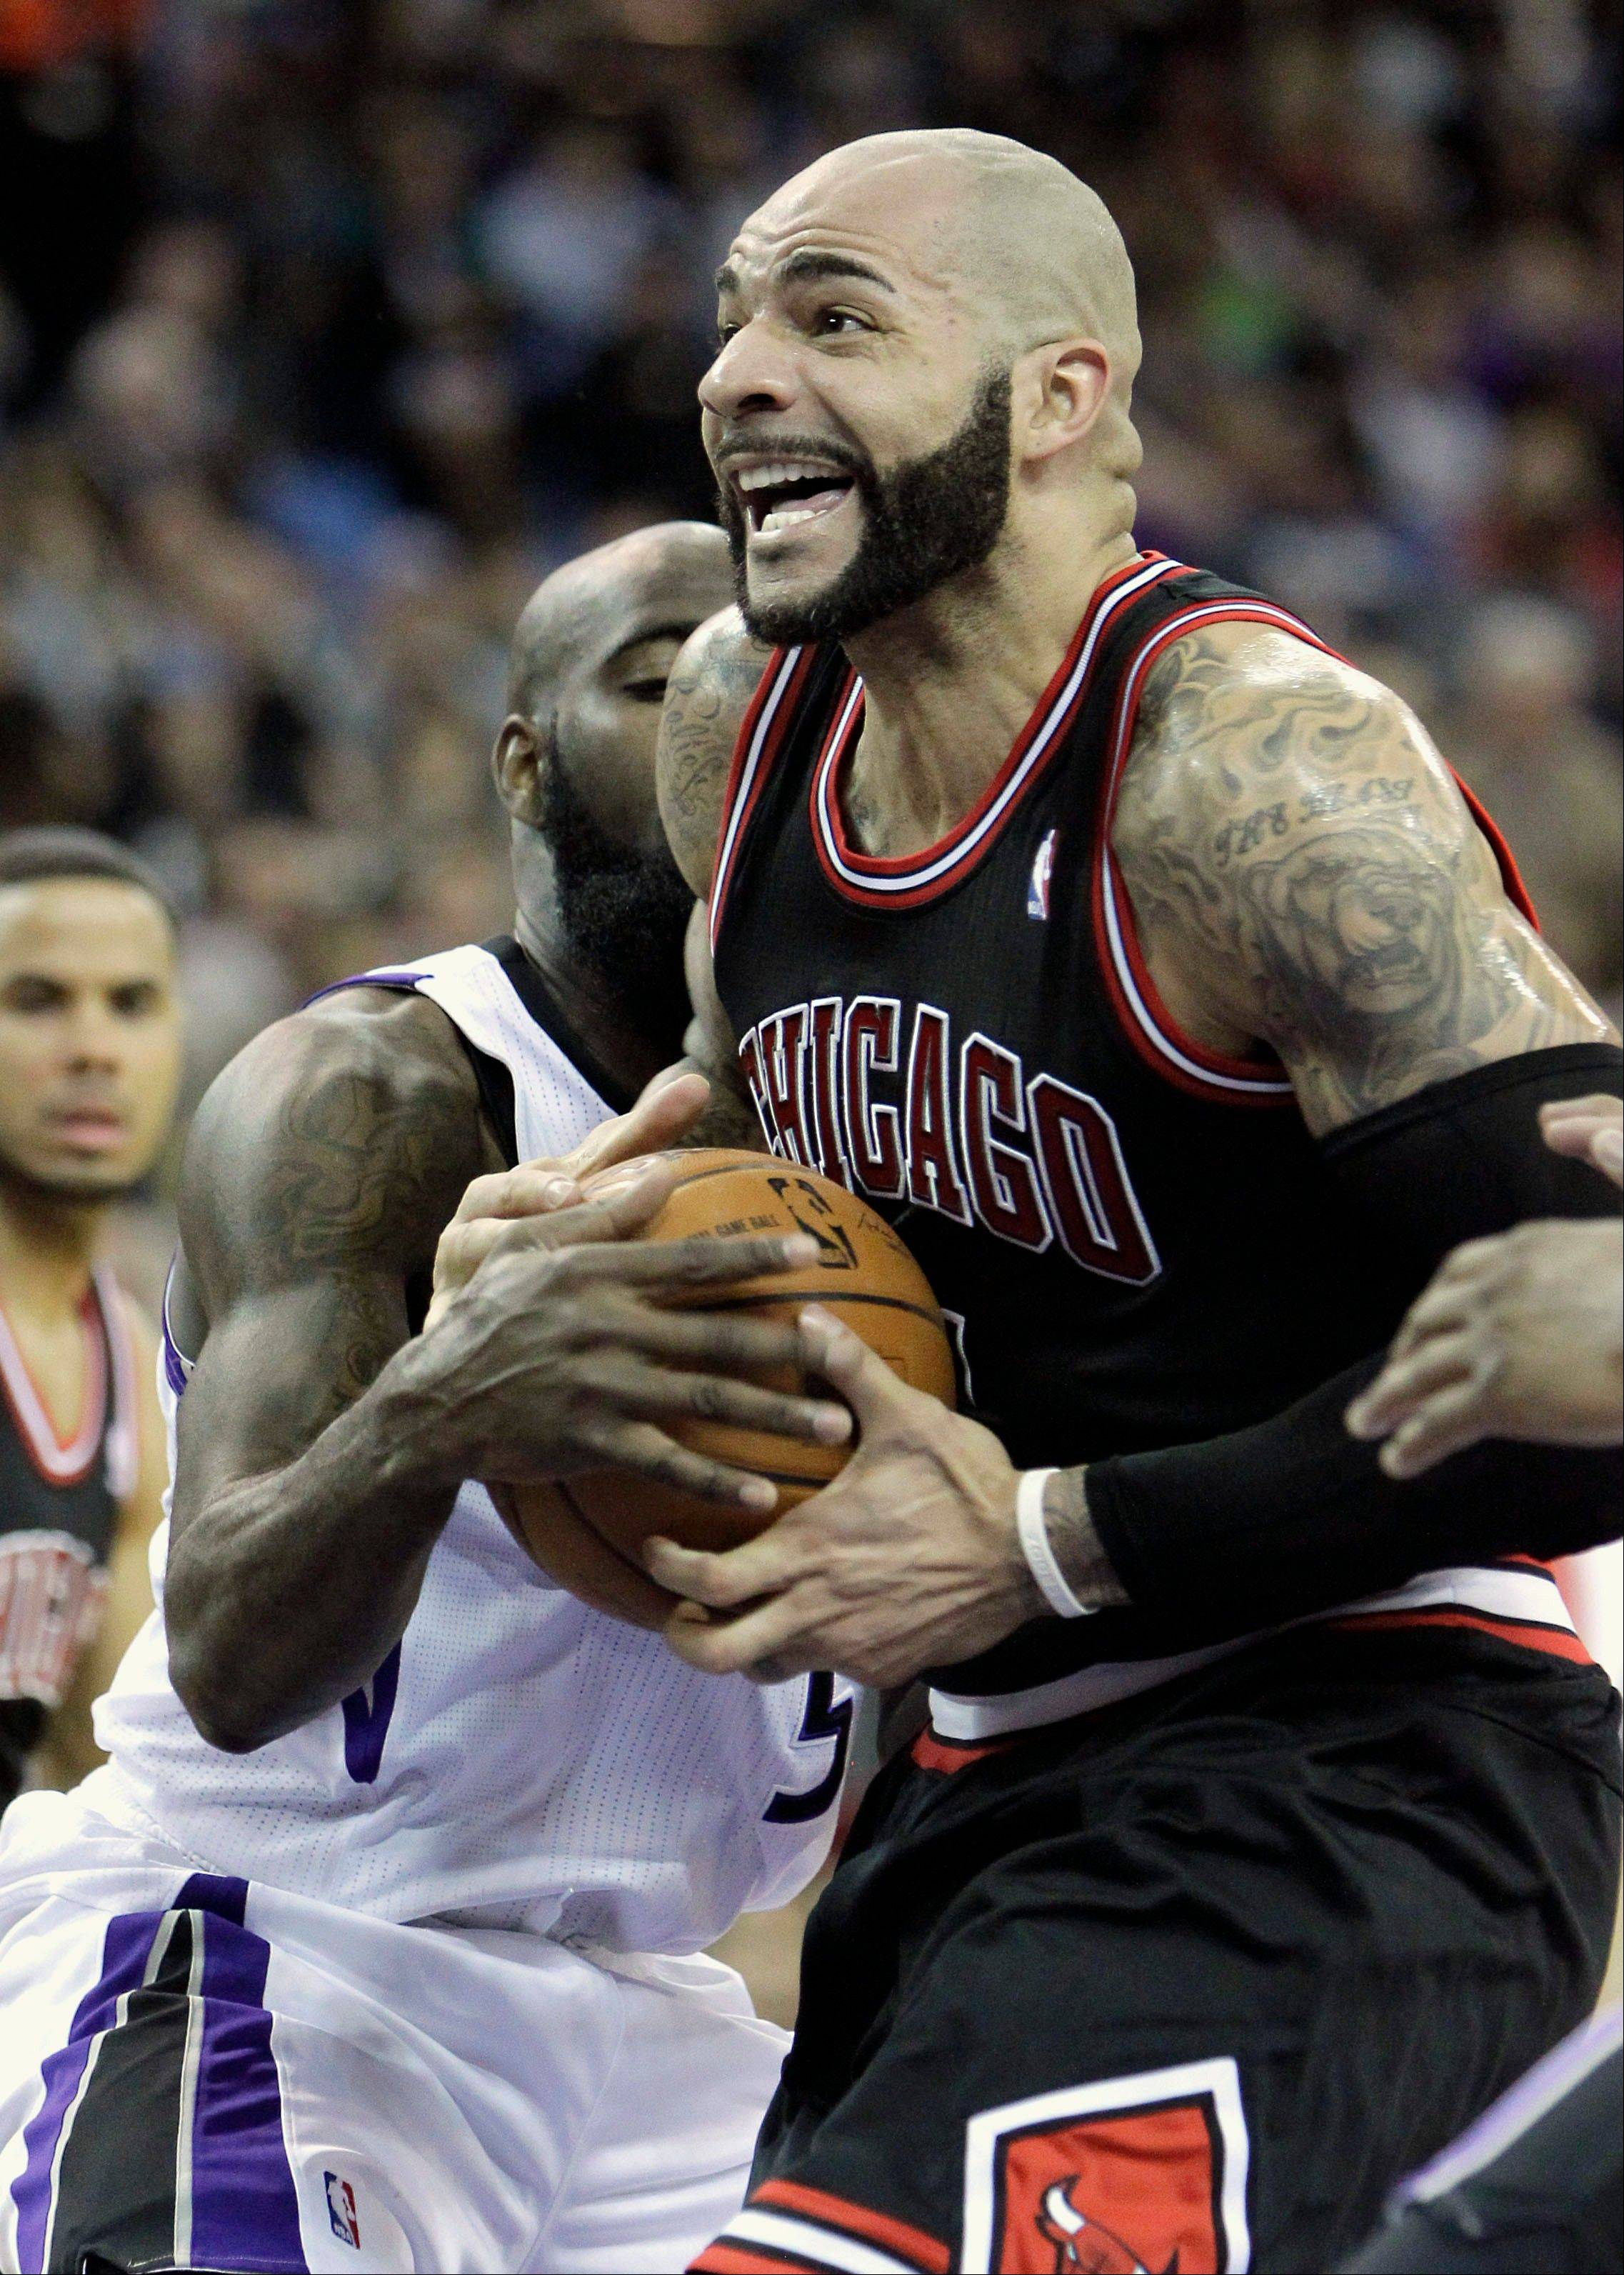 Bulls forward Carlos Boozer expressed his frustration Monday over his lack of fourth-quarter playing time.